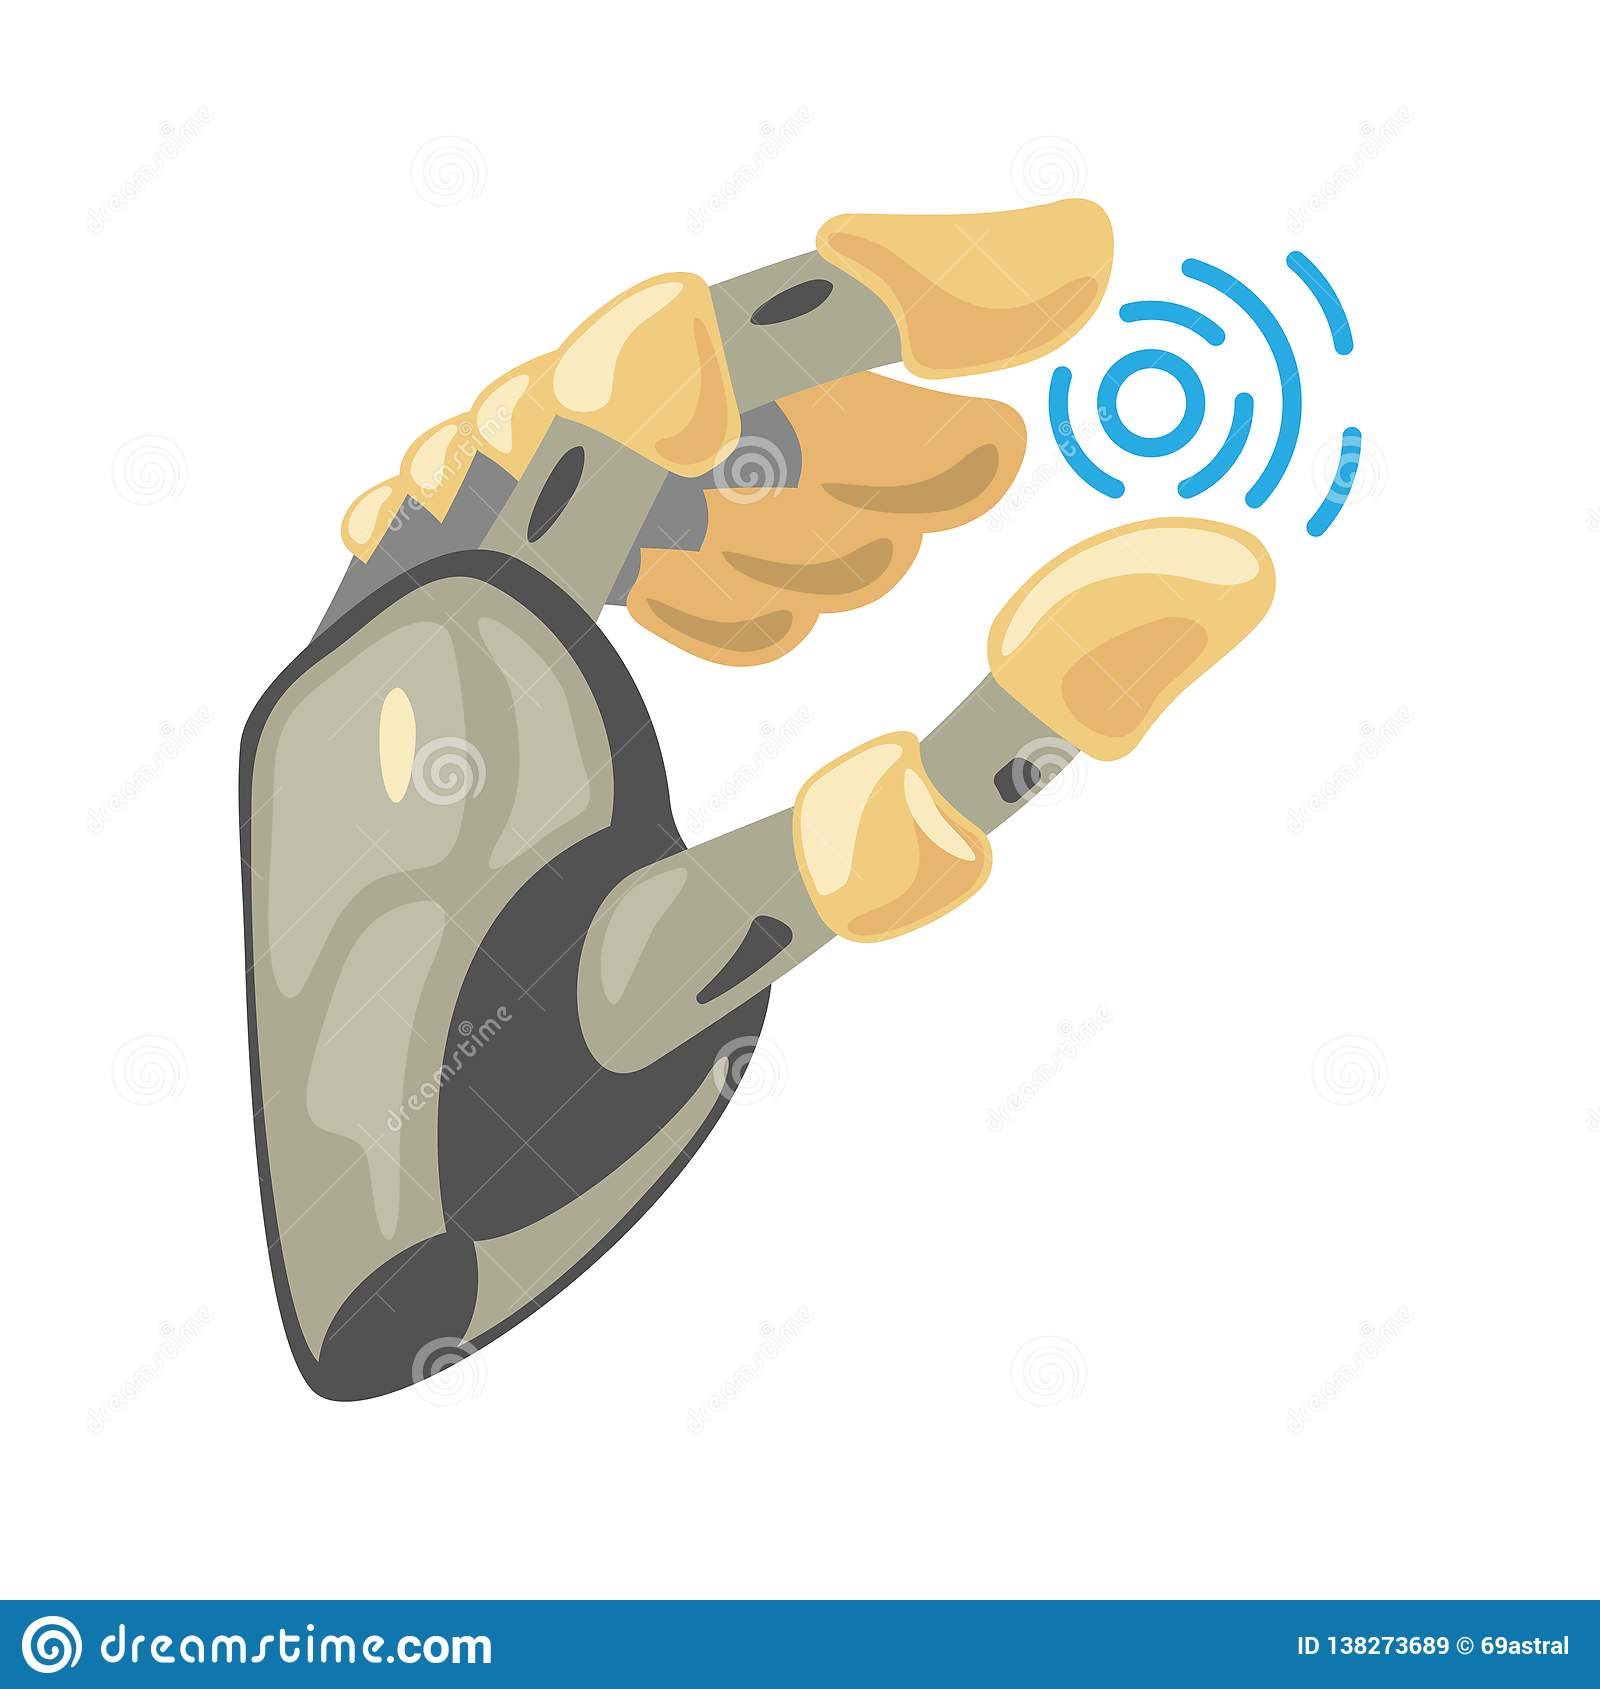 Robot hand. Mechanical technology machine engineering symbol. Hand gestures. Take sign. Energy between fingers.